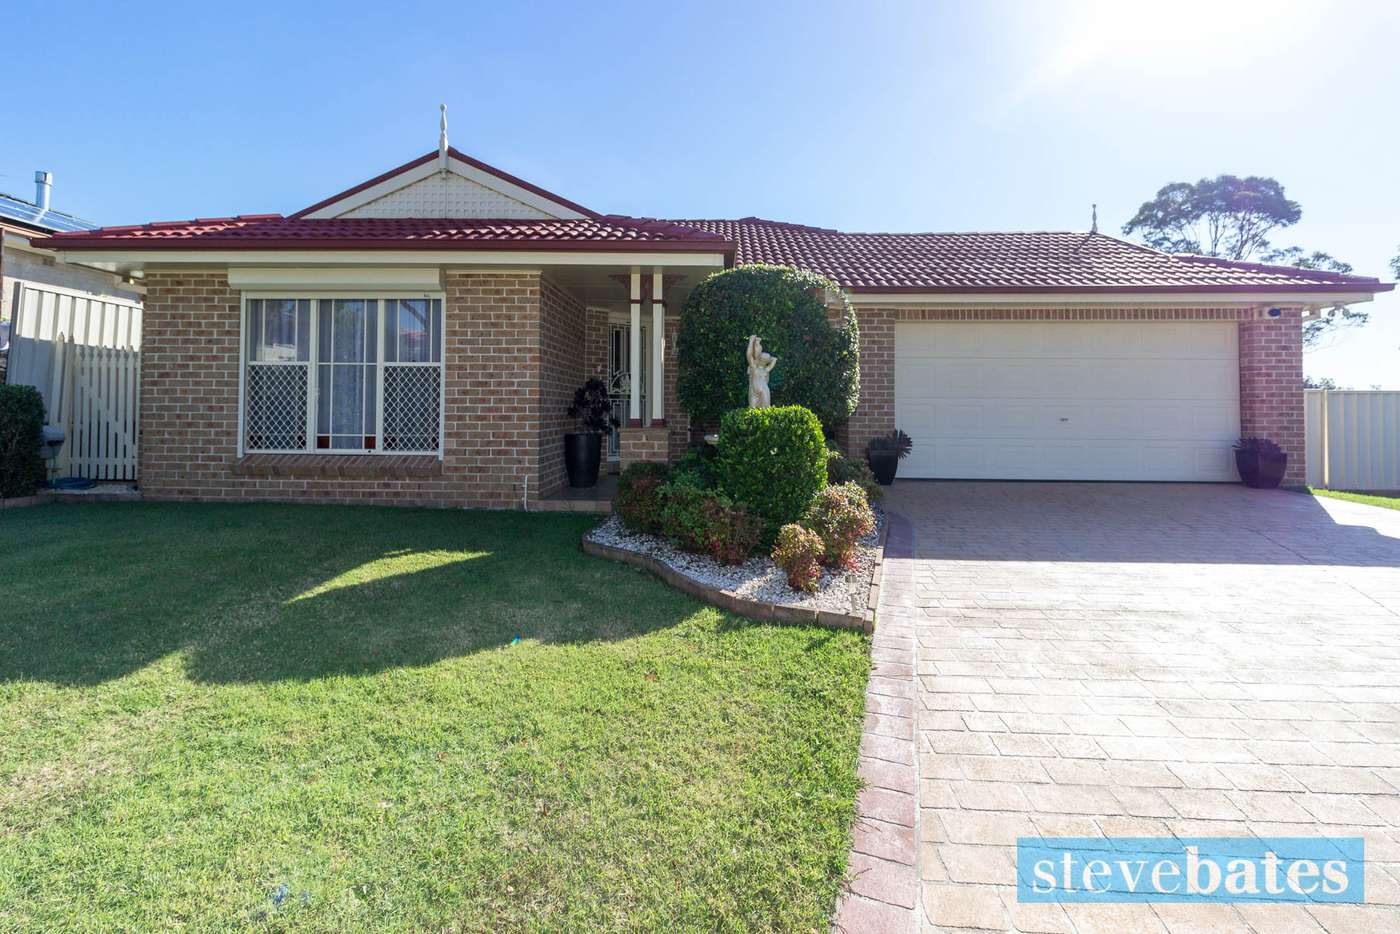 Main view of Homely house listing, 2 Harriet Close, Raymond Terrace NSW 2324